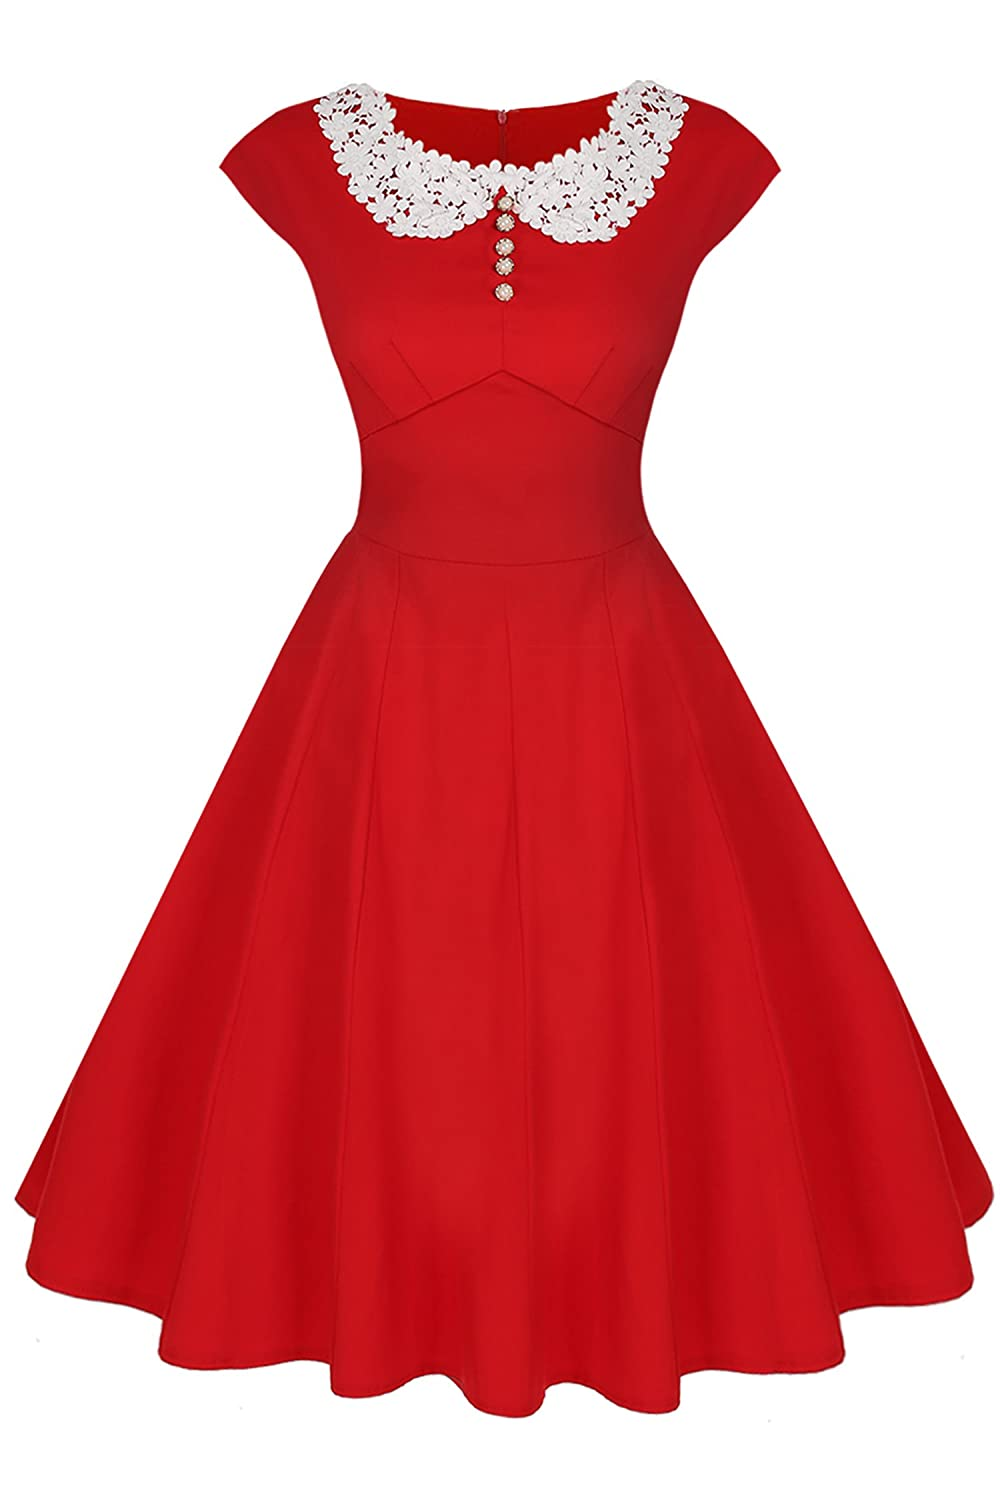 1950s House Dresses and Aprons History ACEVOG Womens Classy Vintage Audrey Hepburn Style 1940s Rockabilly Evening Dress $19.99 AT vintagedancer.com